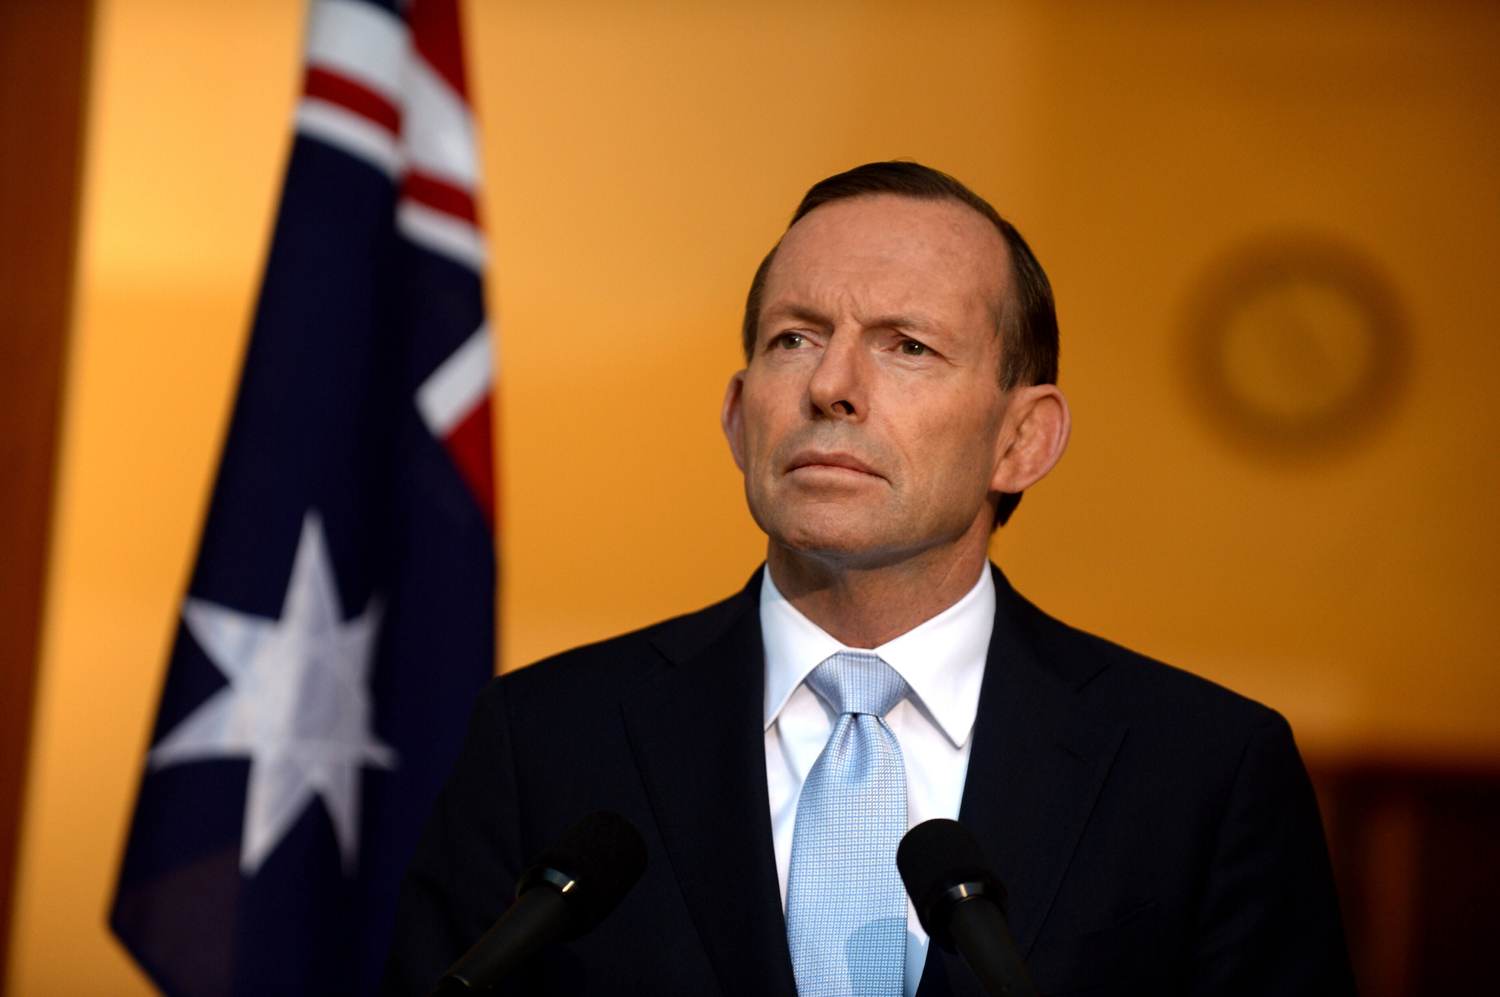 Australian Prime Minister Tony Abbott speaks about the downing of Malaysia Airlines Flight 17 in Ukraine during a press conference in Canberra, Australia on July 18, 2014.